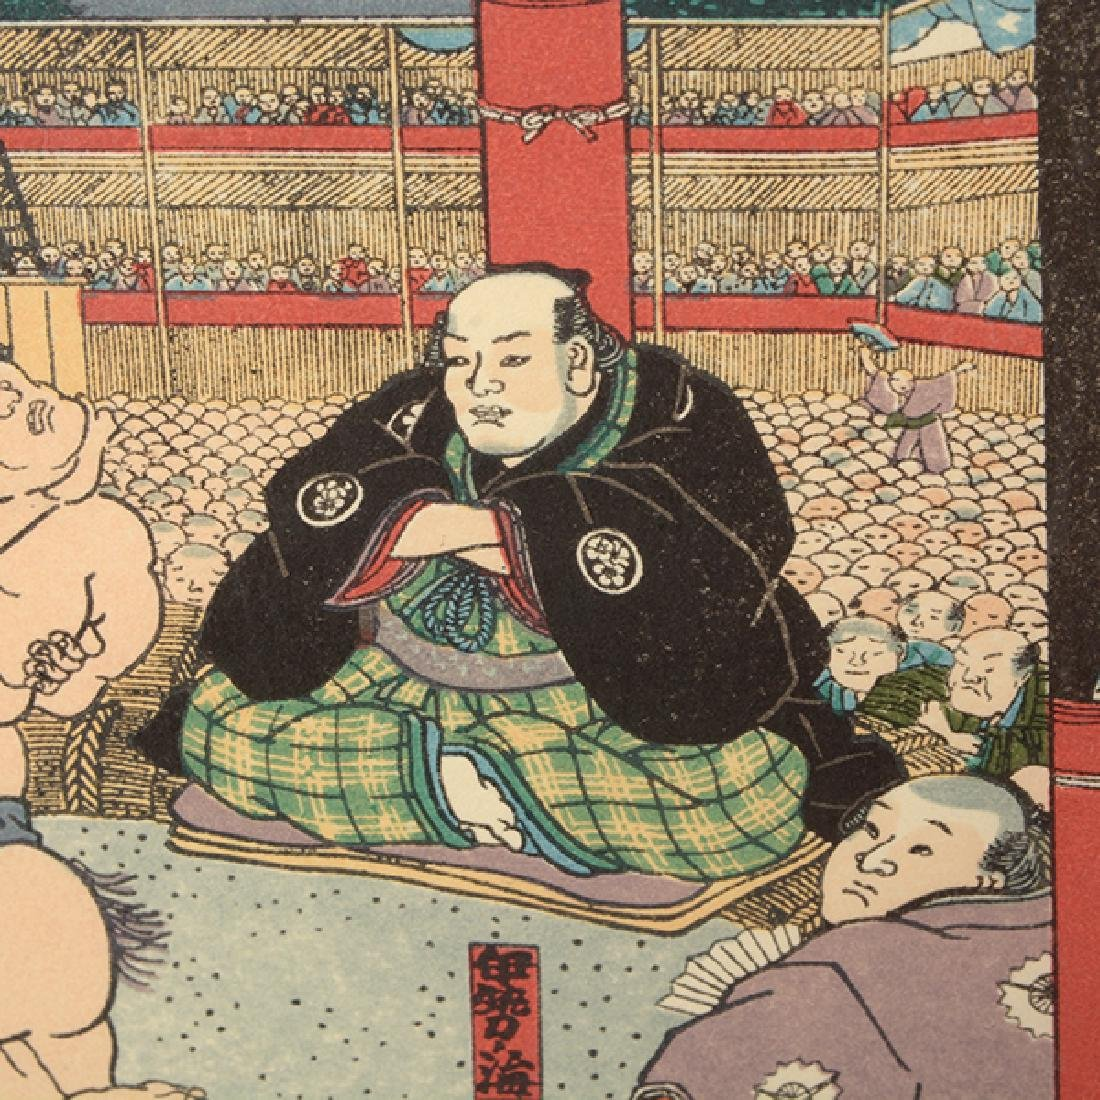 Utagawa Yoshiiku and Toyokuni: Two Woodblocks - 9